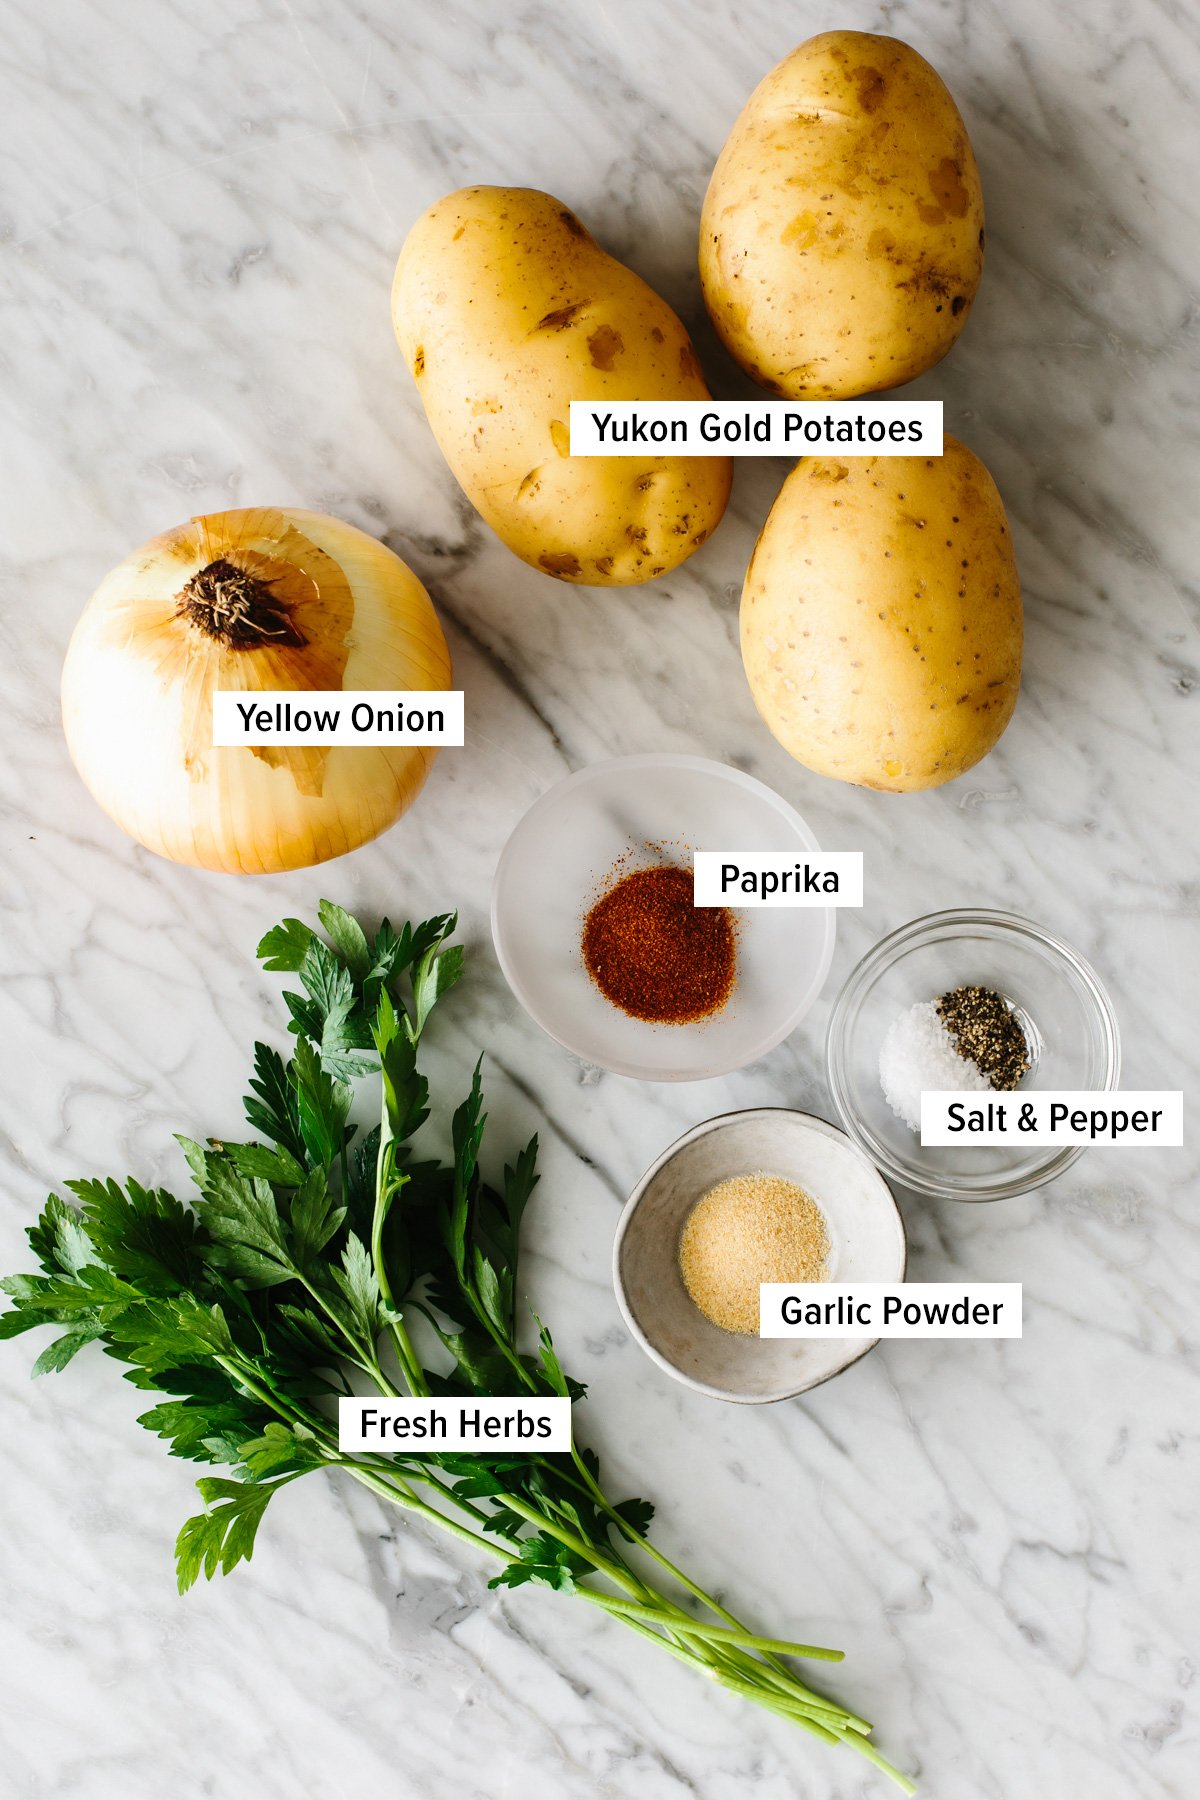 Ingredients for breakfast potatoes on a table.